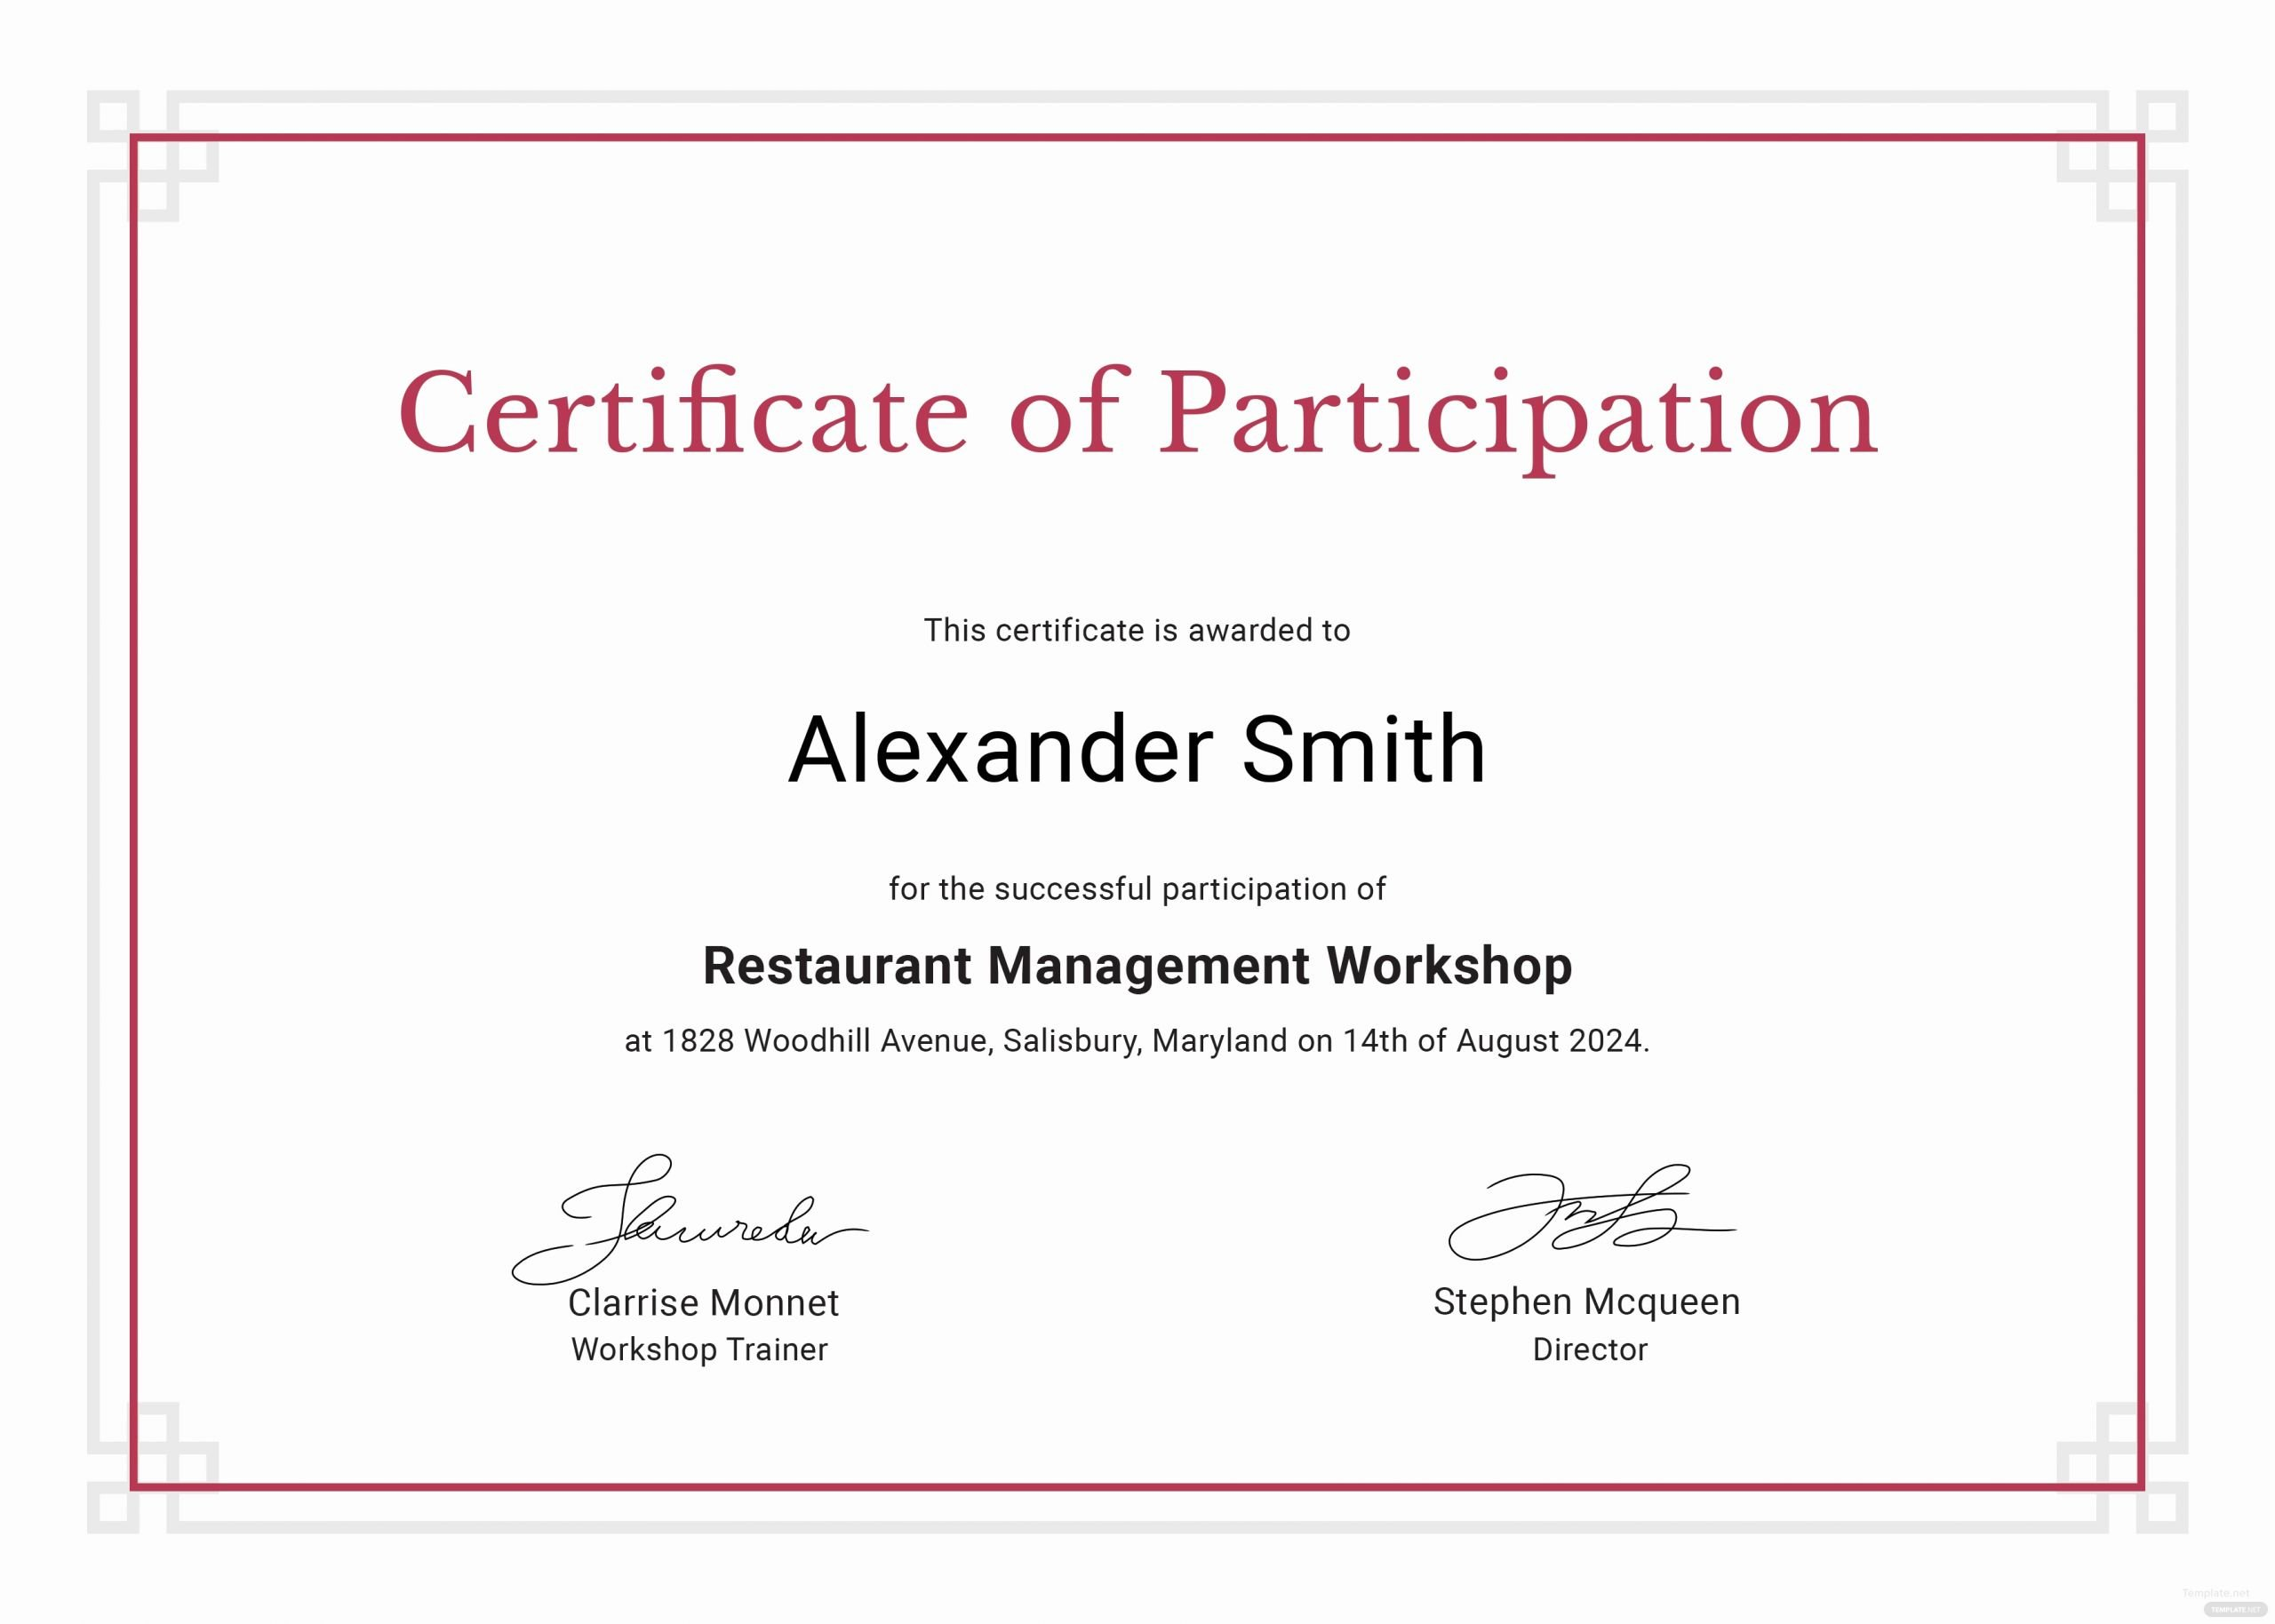 Certificate Of Participation Template Awesome Sample Participation Certificate Template In Adobe